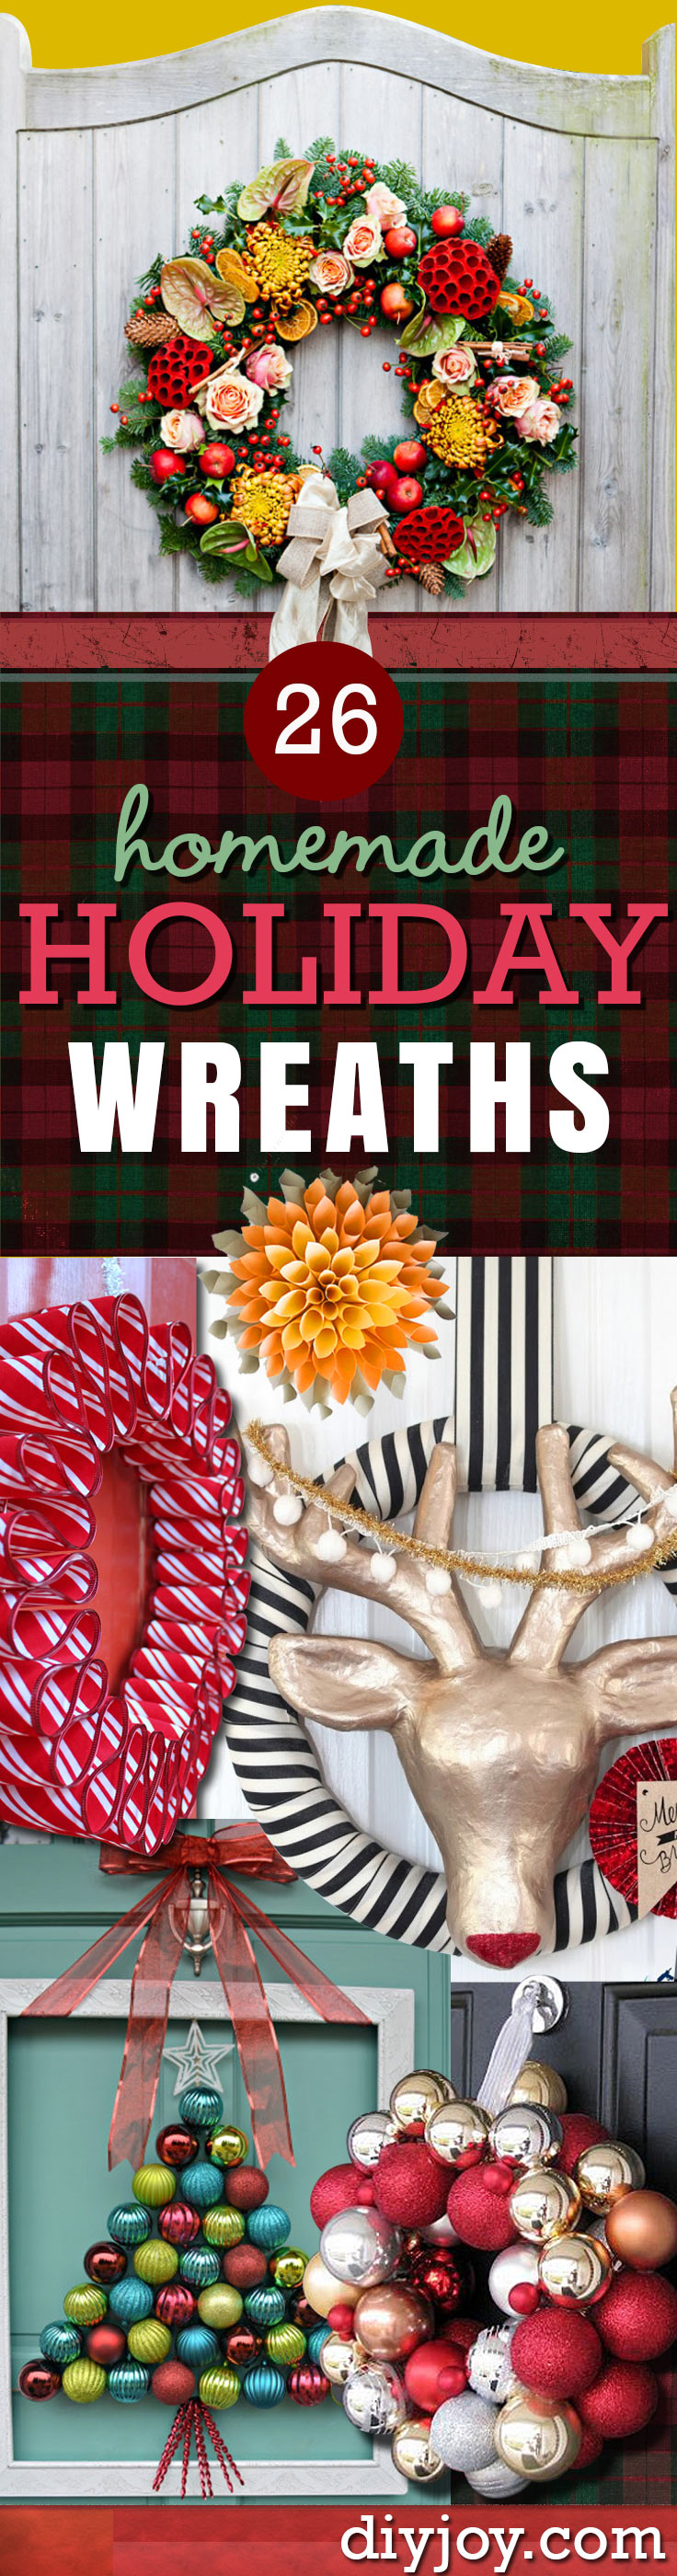 DIY Holiday Wreath Pinterest - Easy DIY Holiday Decor Ideas - Homemade Christmas Decorations for the Holidays - DIY Christmas Crafts and Projects at DIY JOY